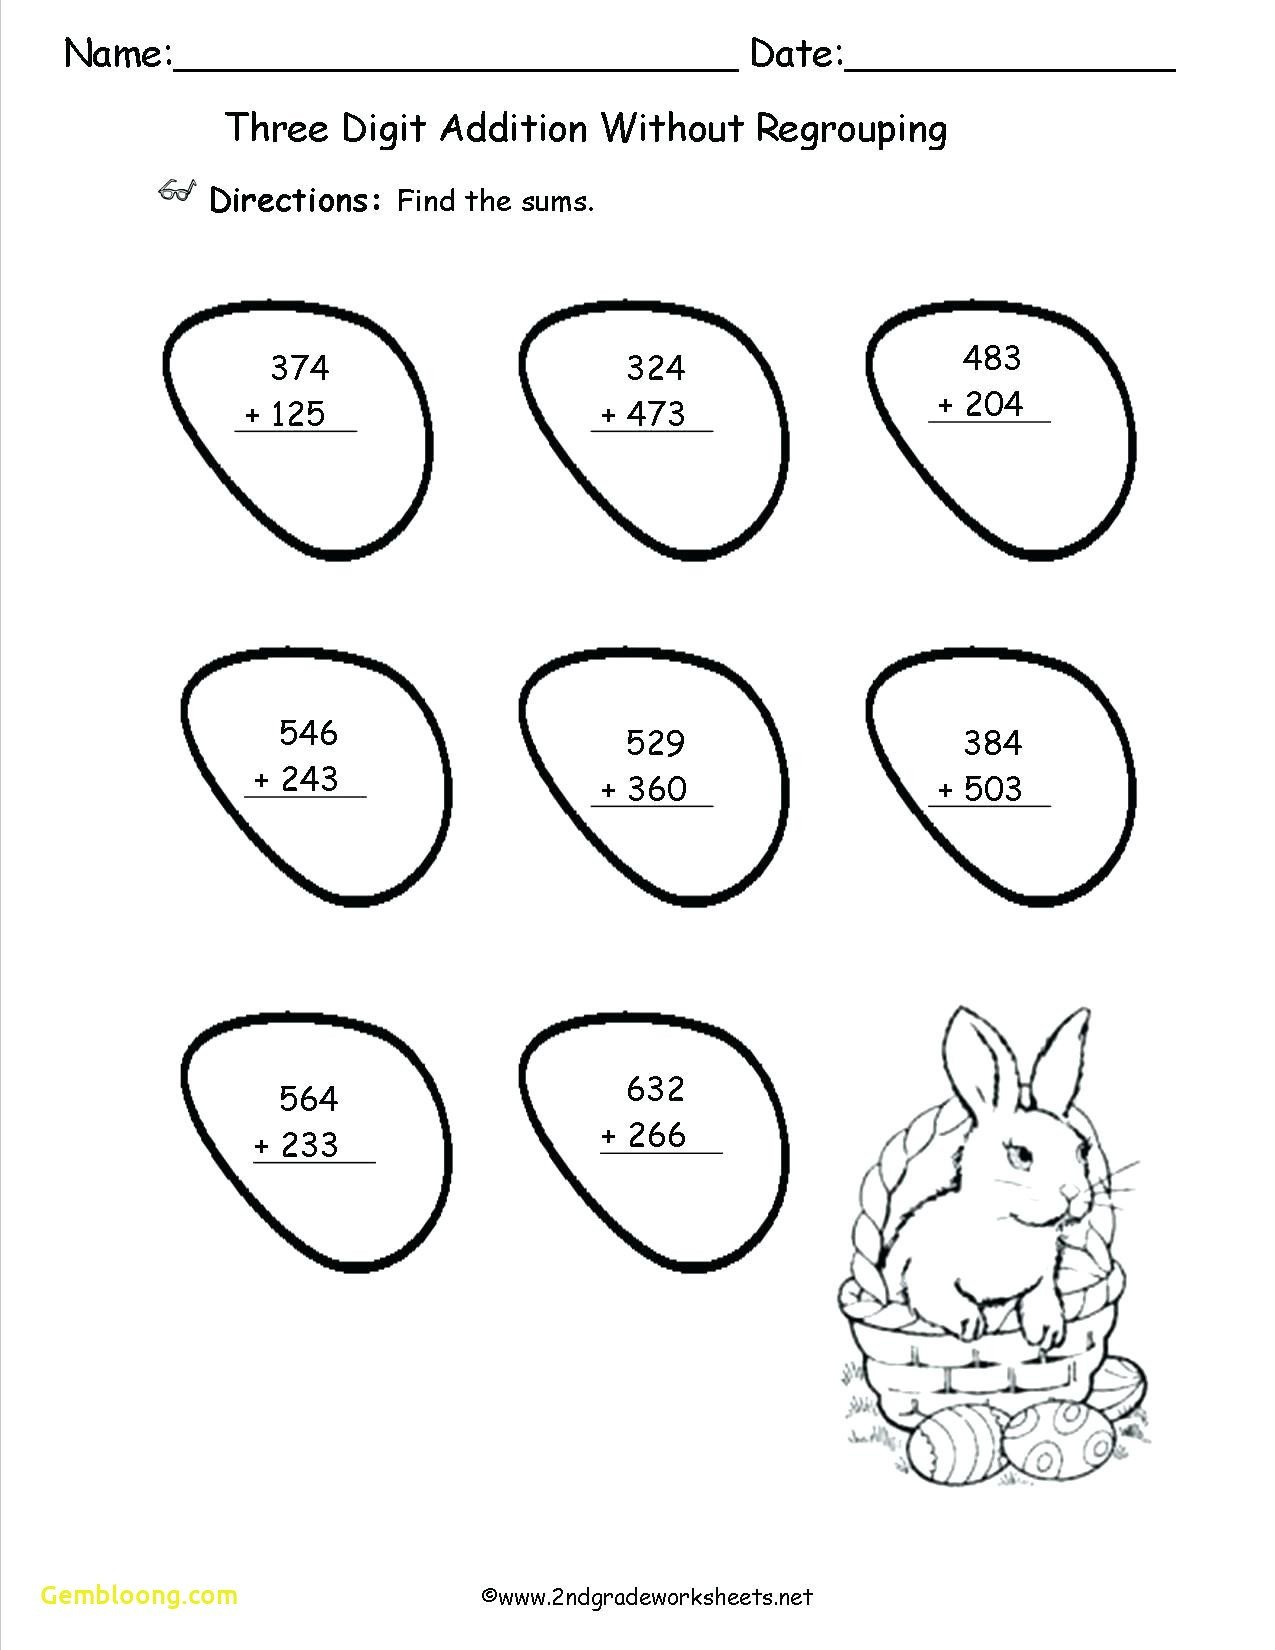 Abeka 3rd Grade Math Worksheets Best Math Worksheets for 2nd Grade 3rd Grade Math